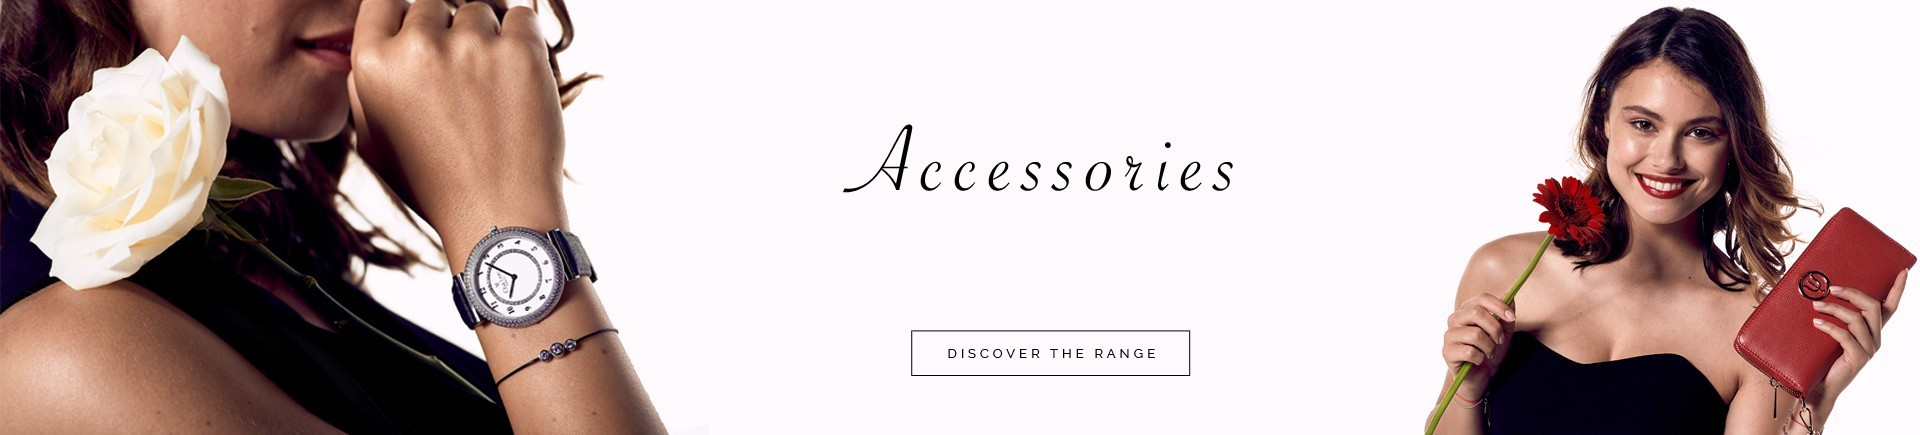 The accessories, the glamorous touch of your outfits